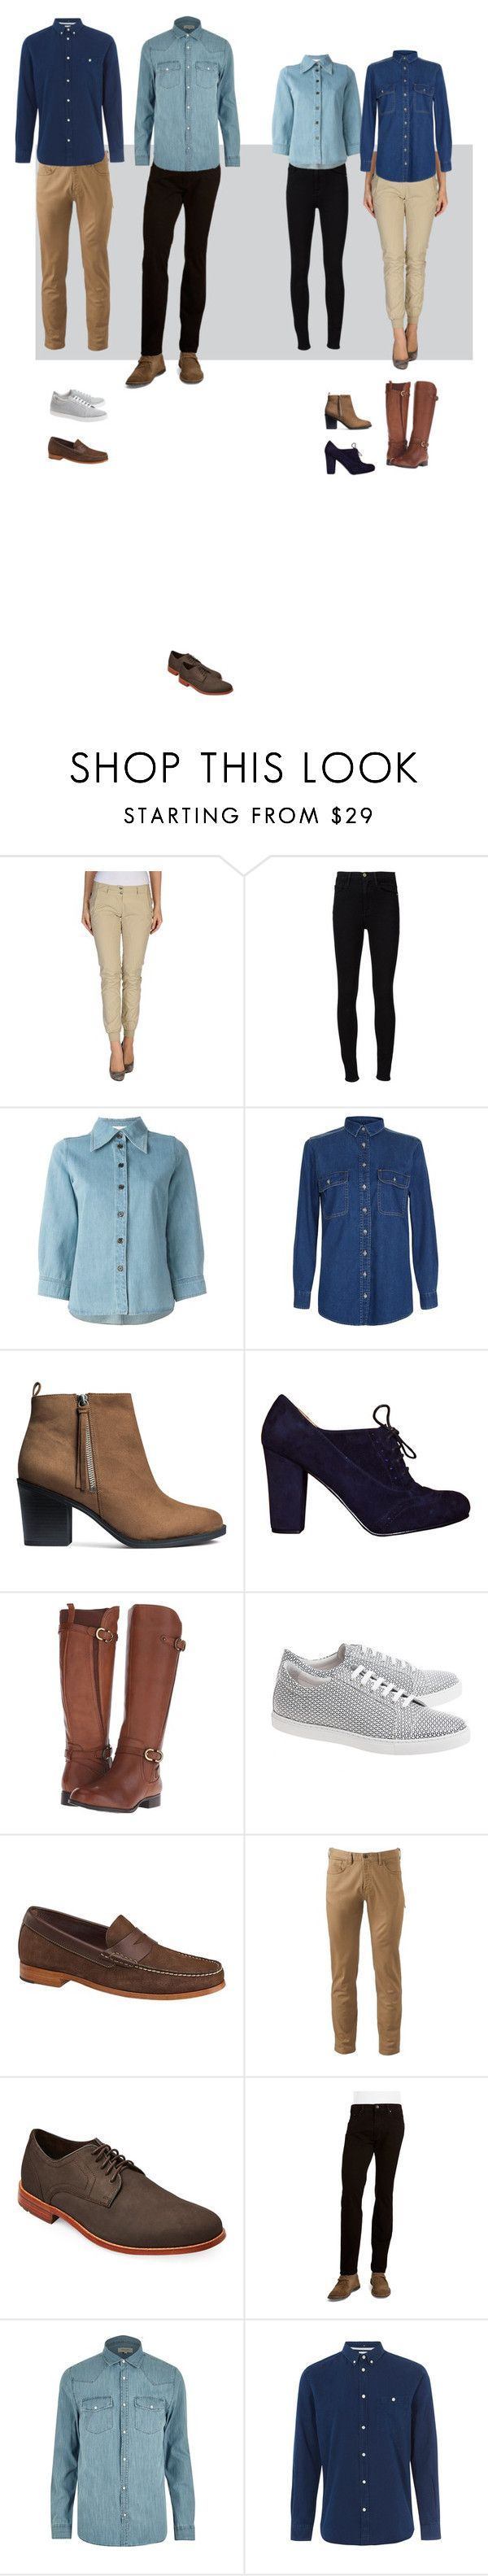 """Dotación Tiendas"" by visual-i on Polyvore featuring Freddy, Frame Denim, Chloé, New Look, H&M, Naturalizer, Comme des Garçons SHIRT, Johnston & Murphy, Dockers y Rockport"